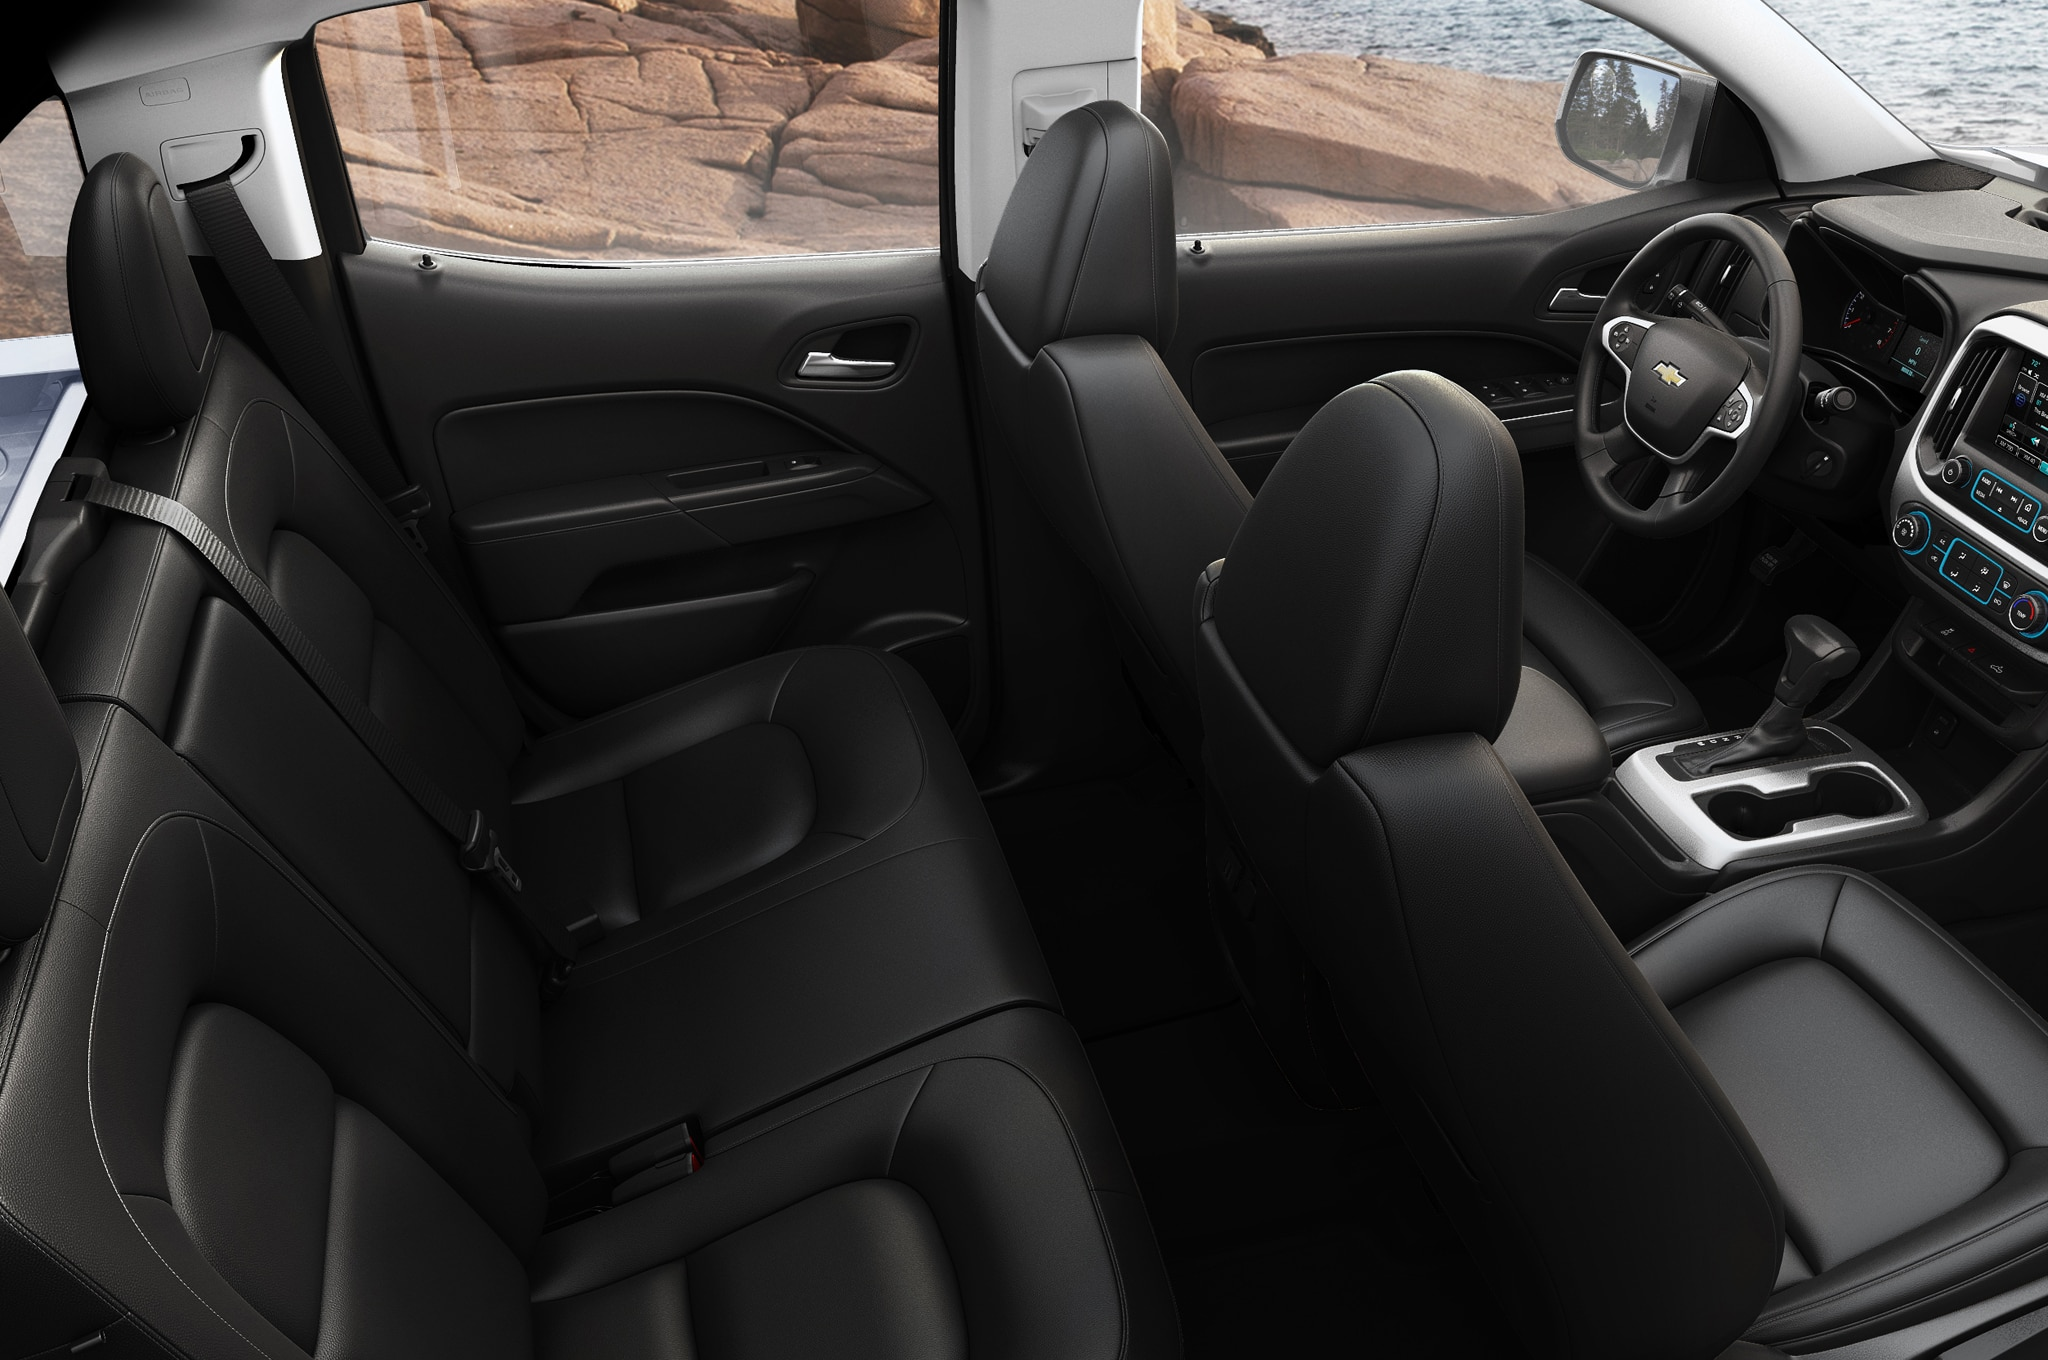 2015 Chevrolet Colorado seats